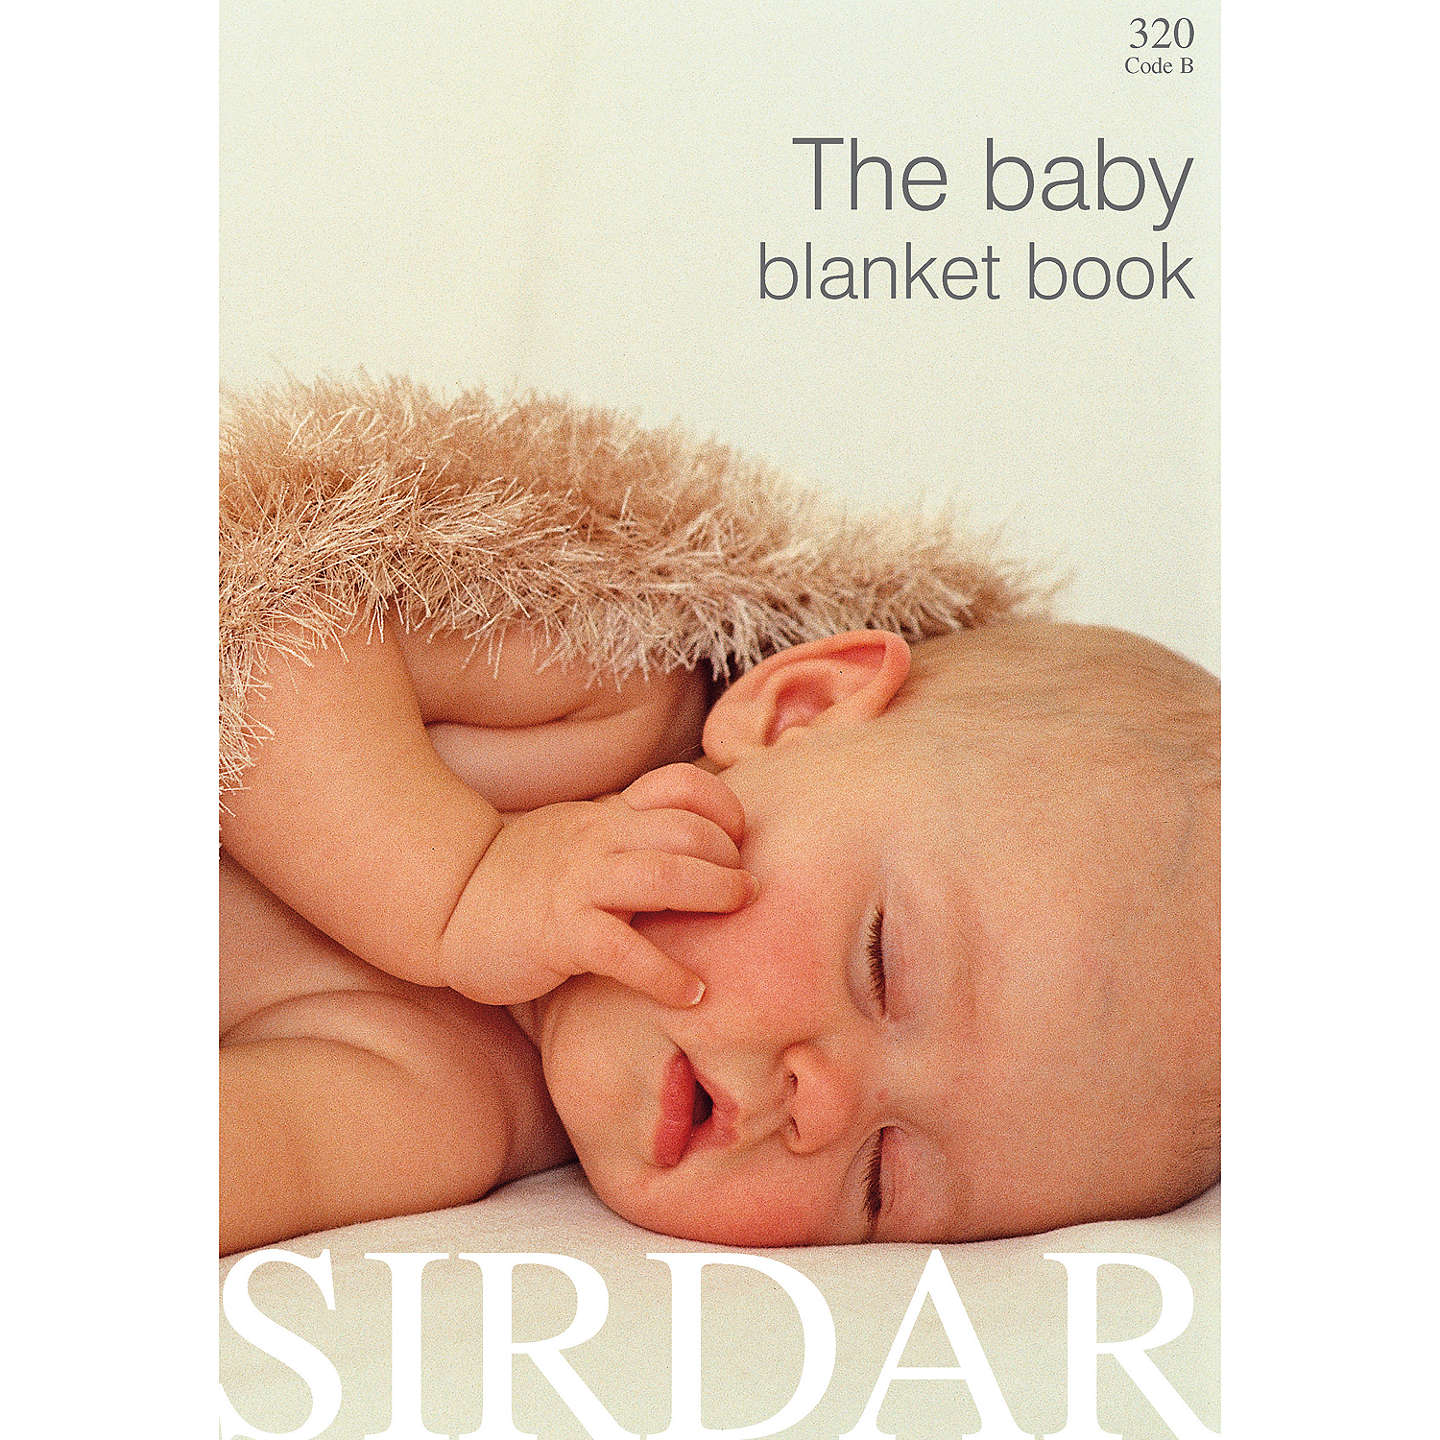 Sirdar The Baby Blanket Knitting Pattern Book at John Lewis